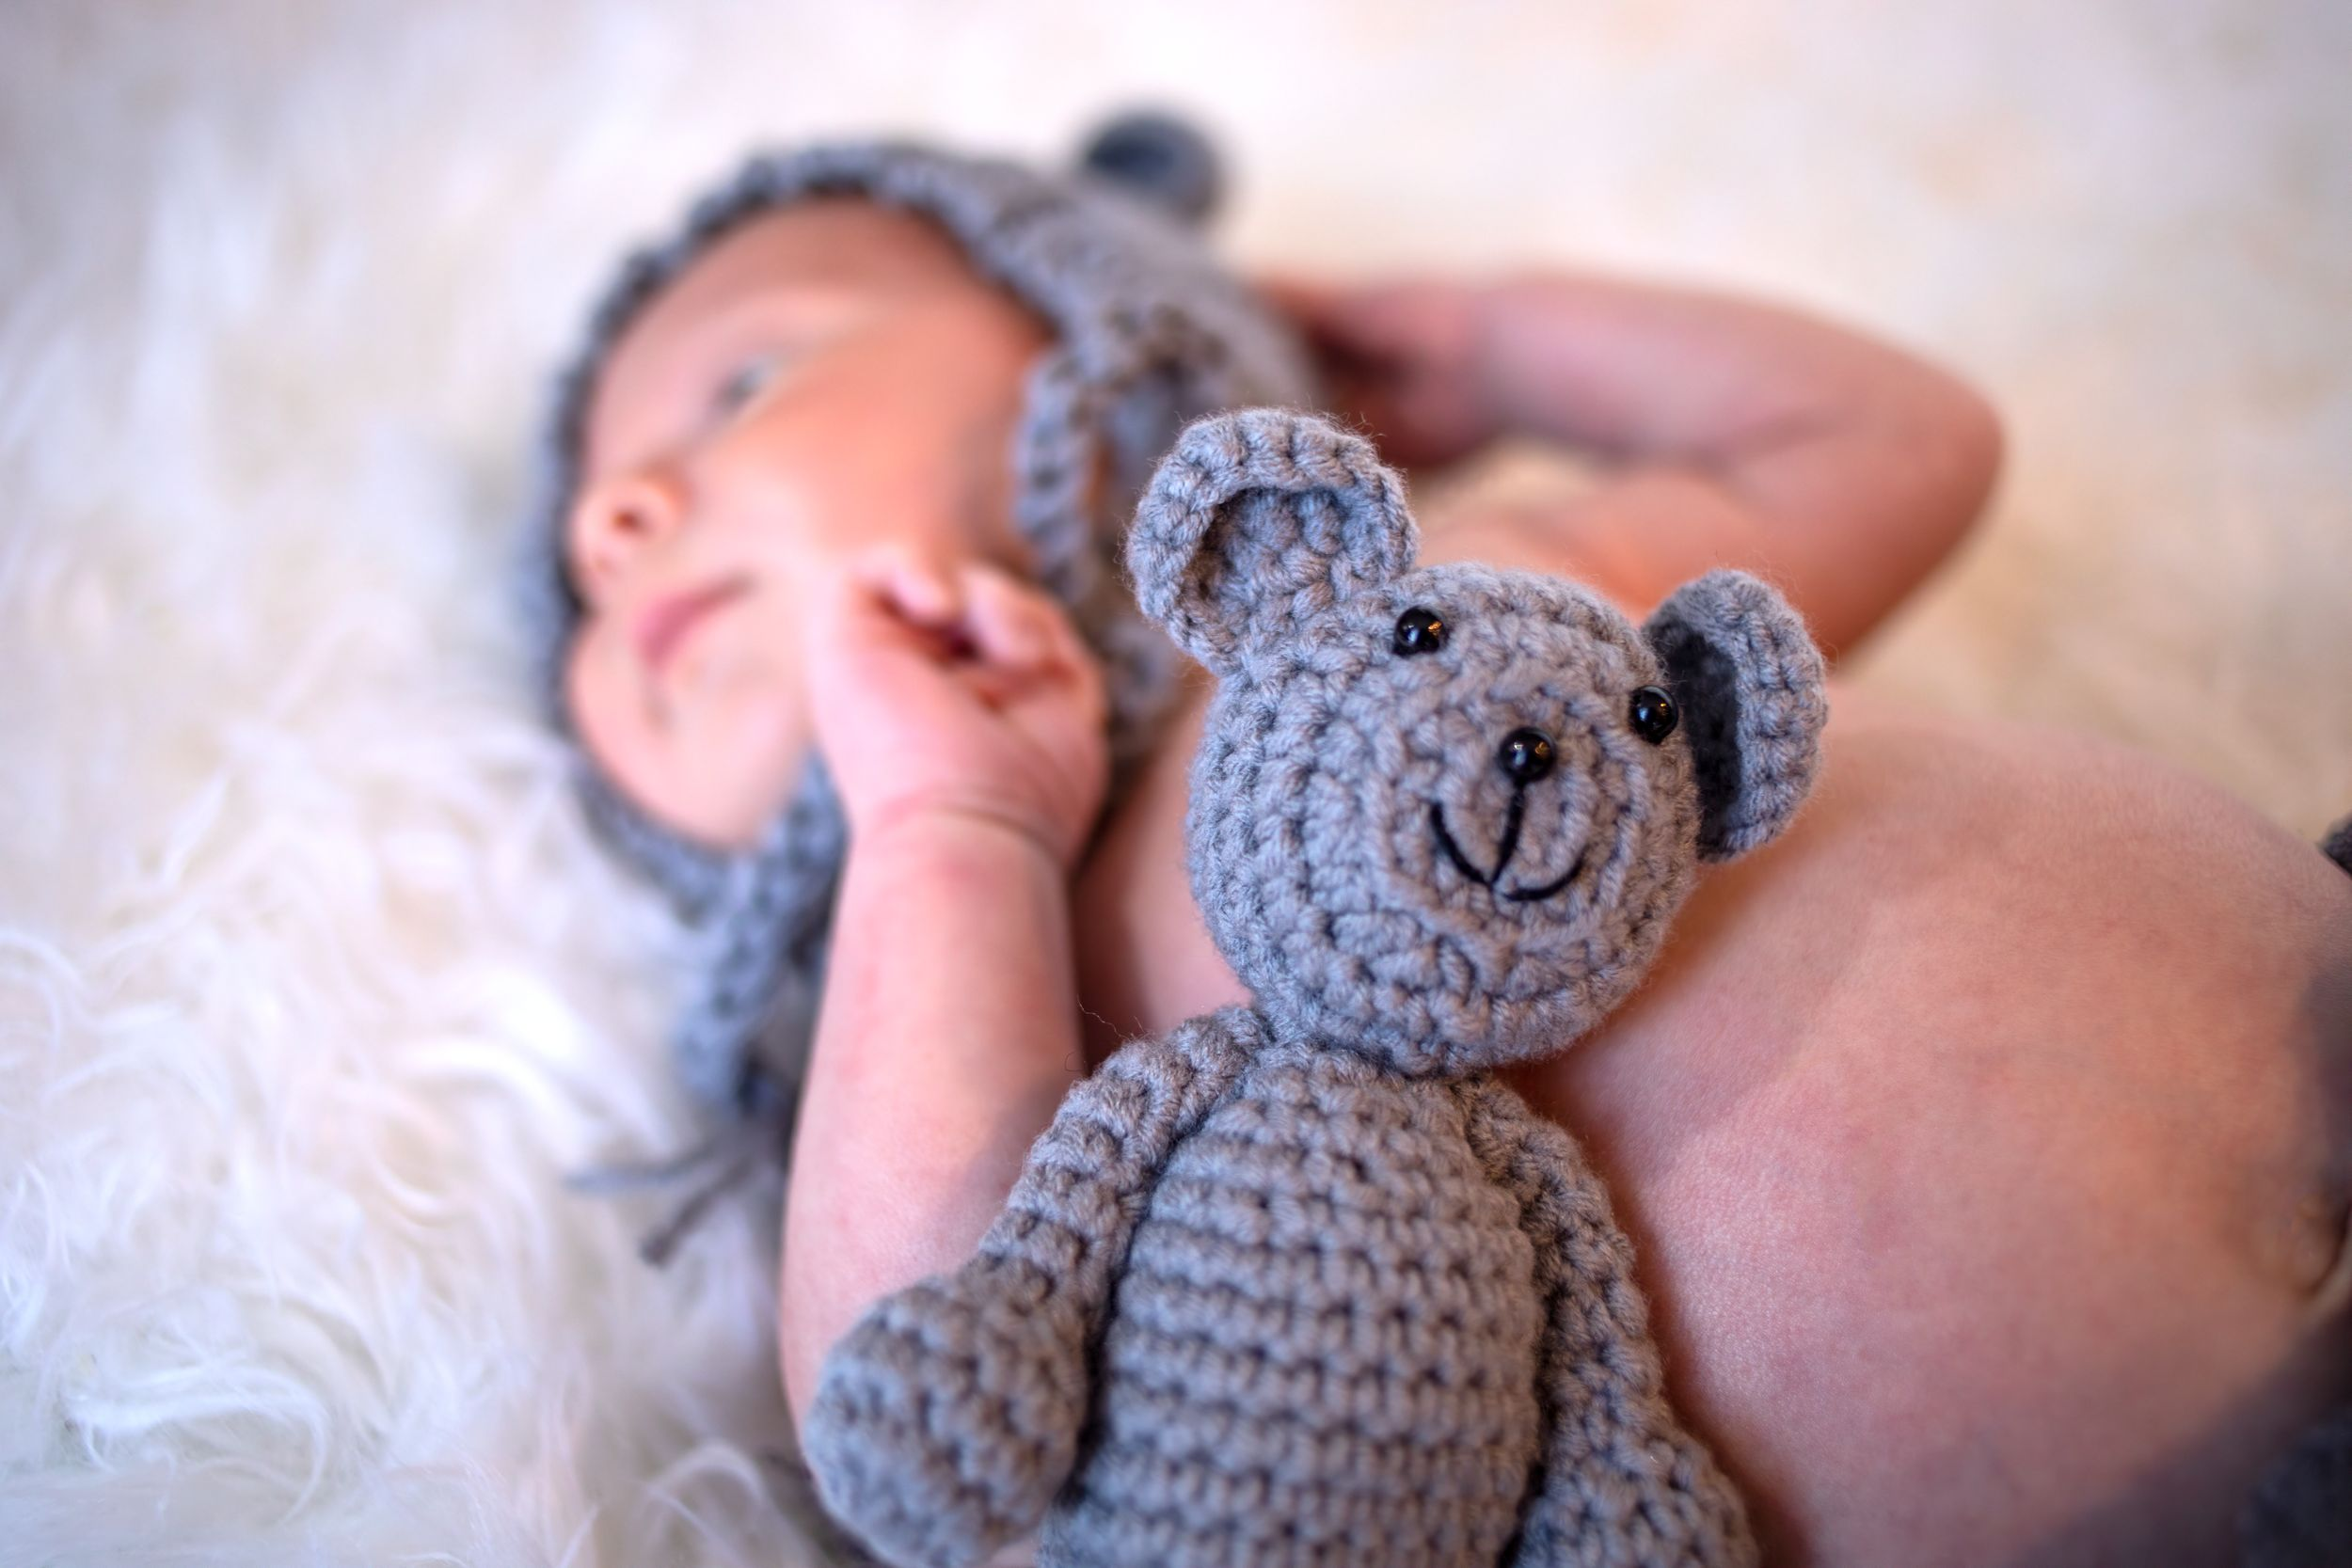 Close up of newborn with a tiny stuffed bear.